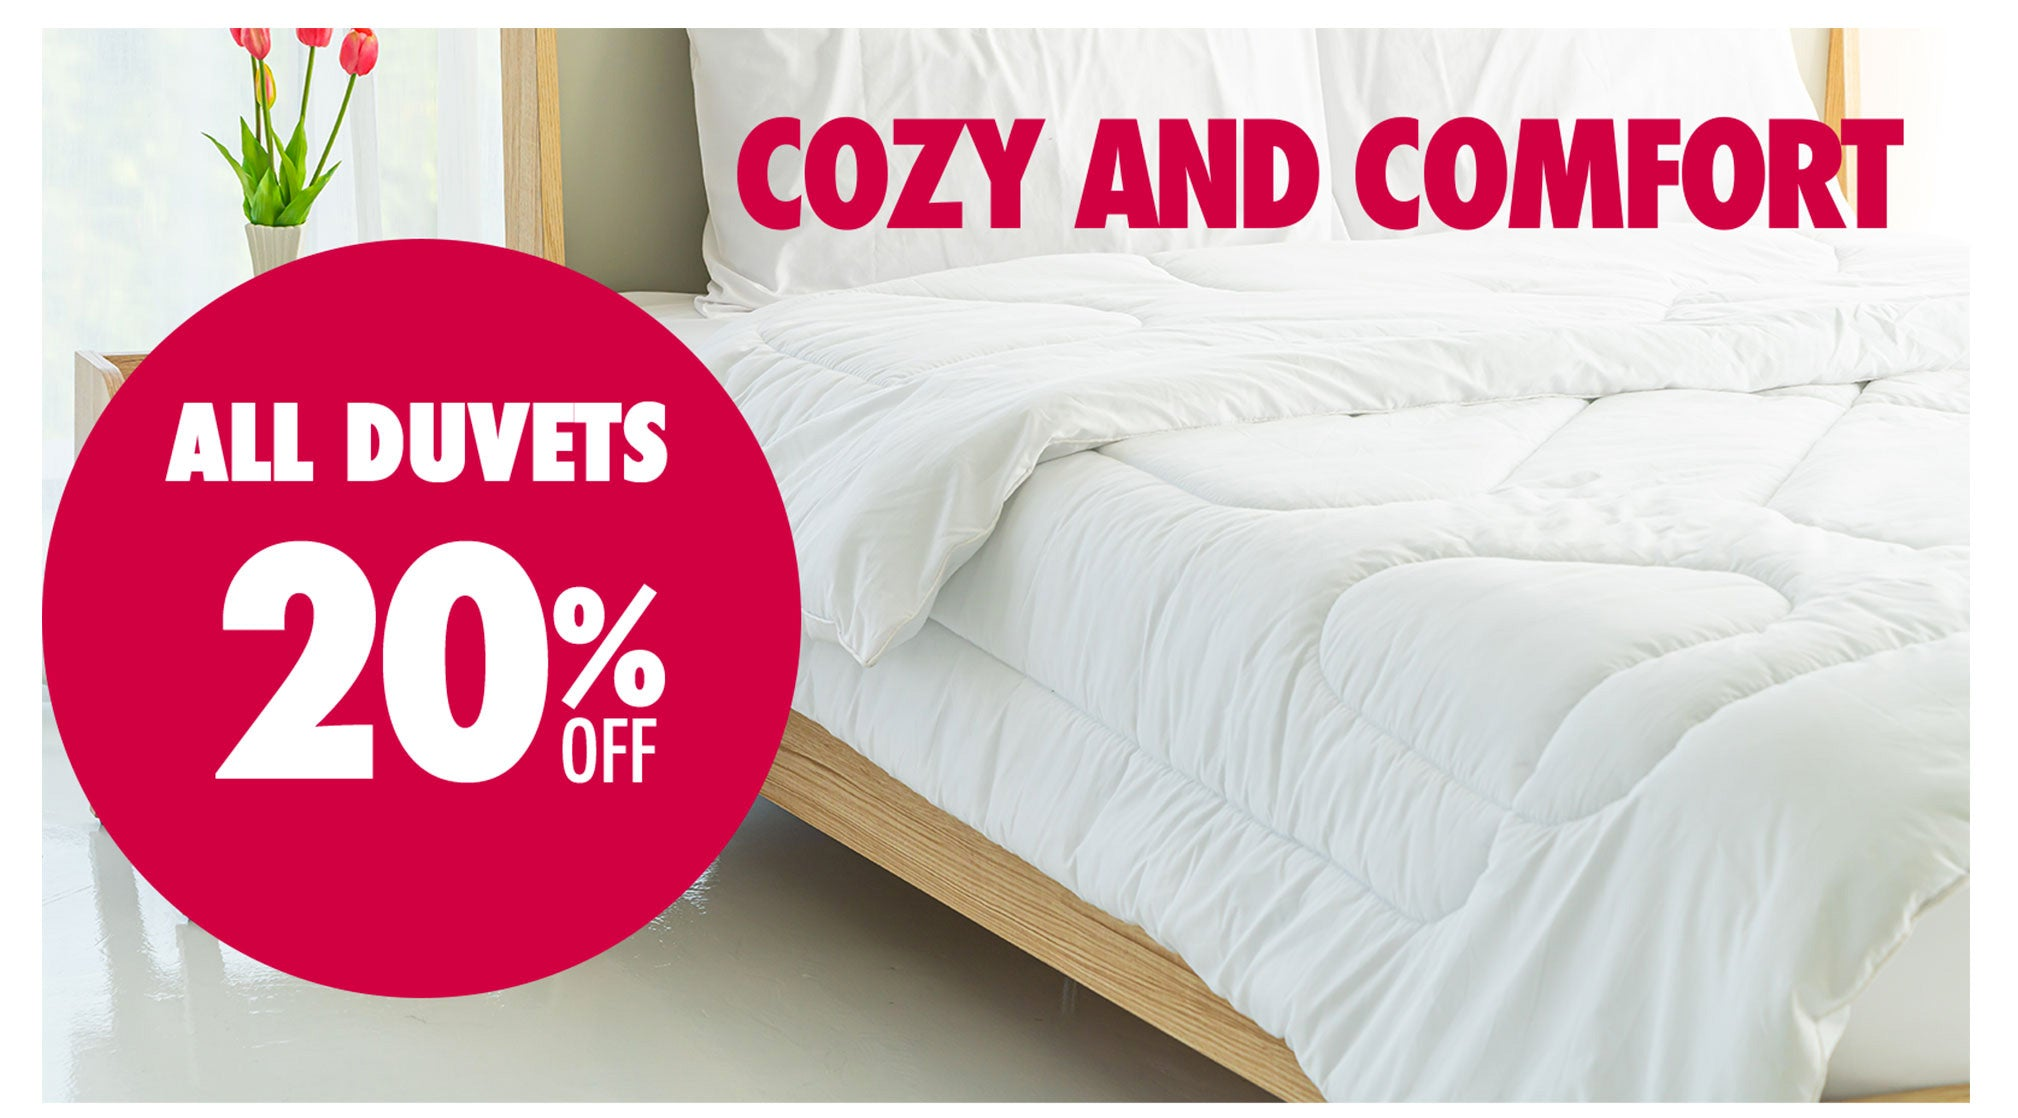 ALL DUVETS 20%OFF